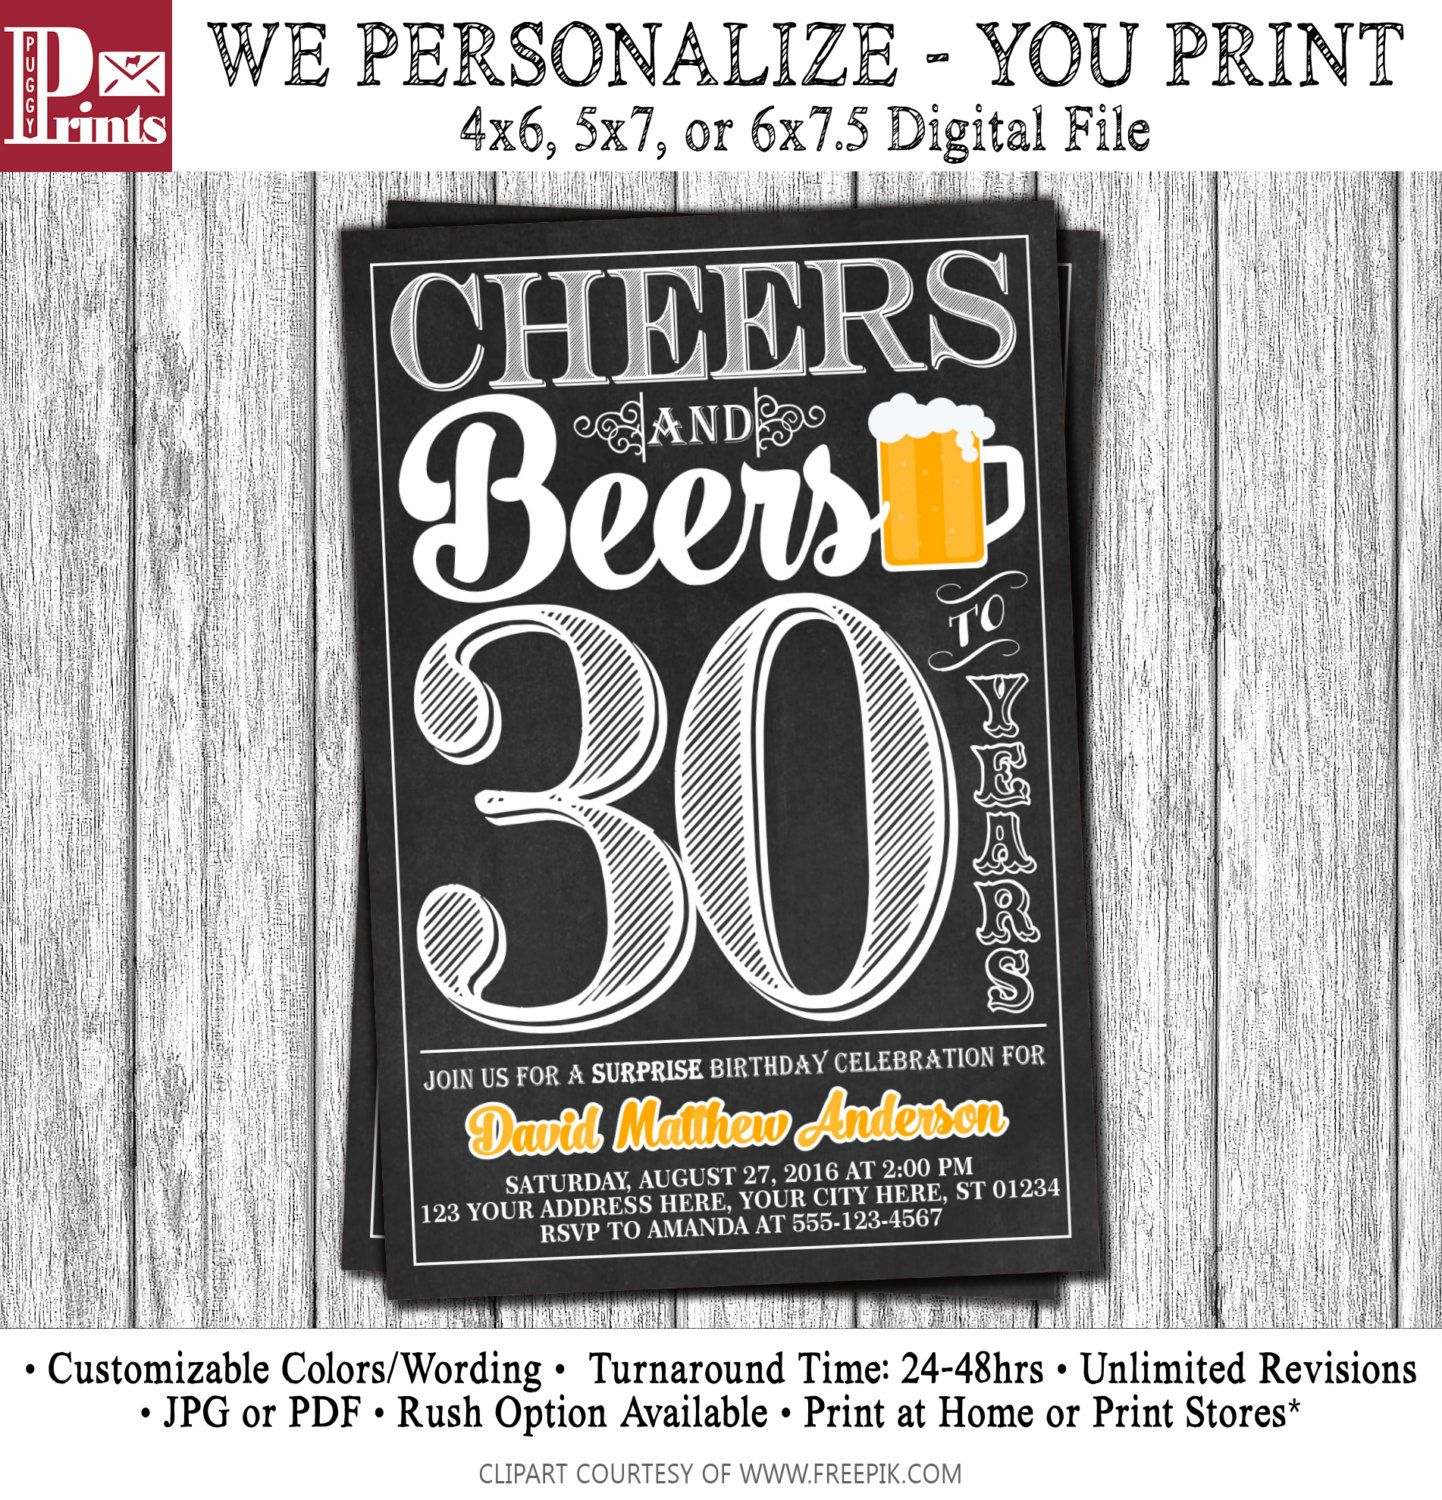 Cheers and beers to 30 years birthday invitation 30th 40th 50th cheers and beers to 30 years birthday invitation 30th 40th 50th surprise birthday filmwisefo Image collections